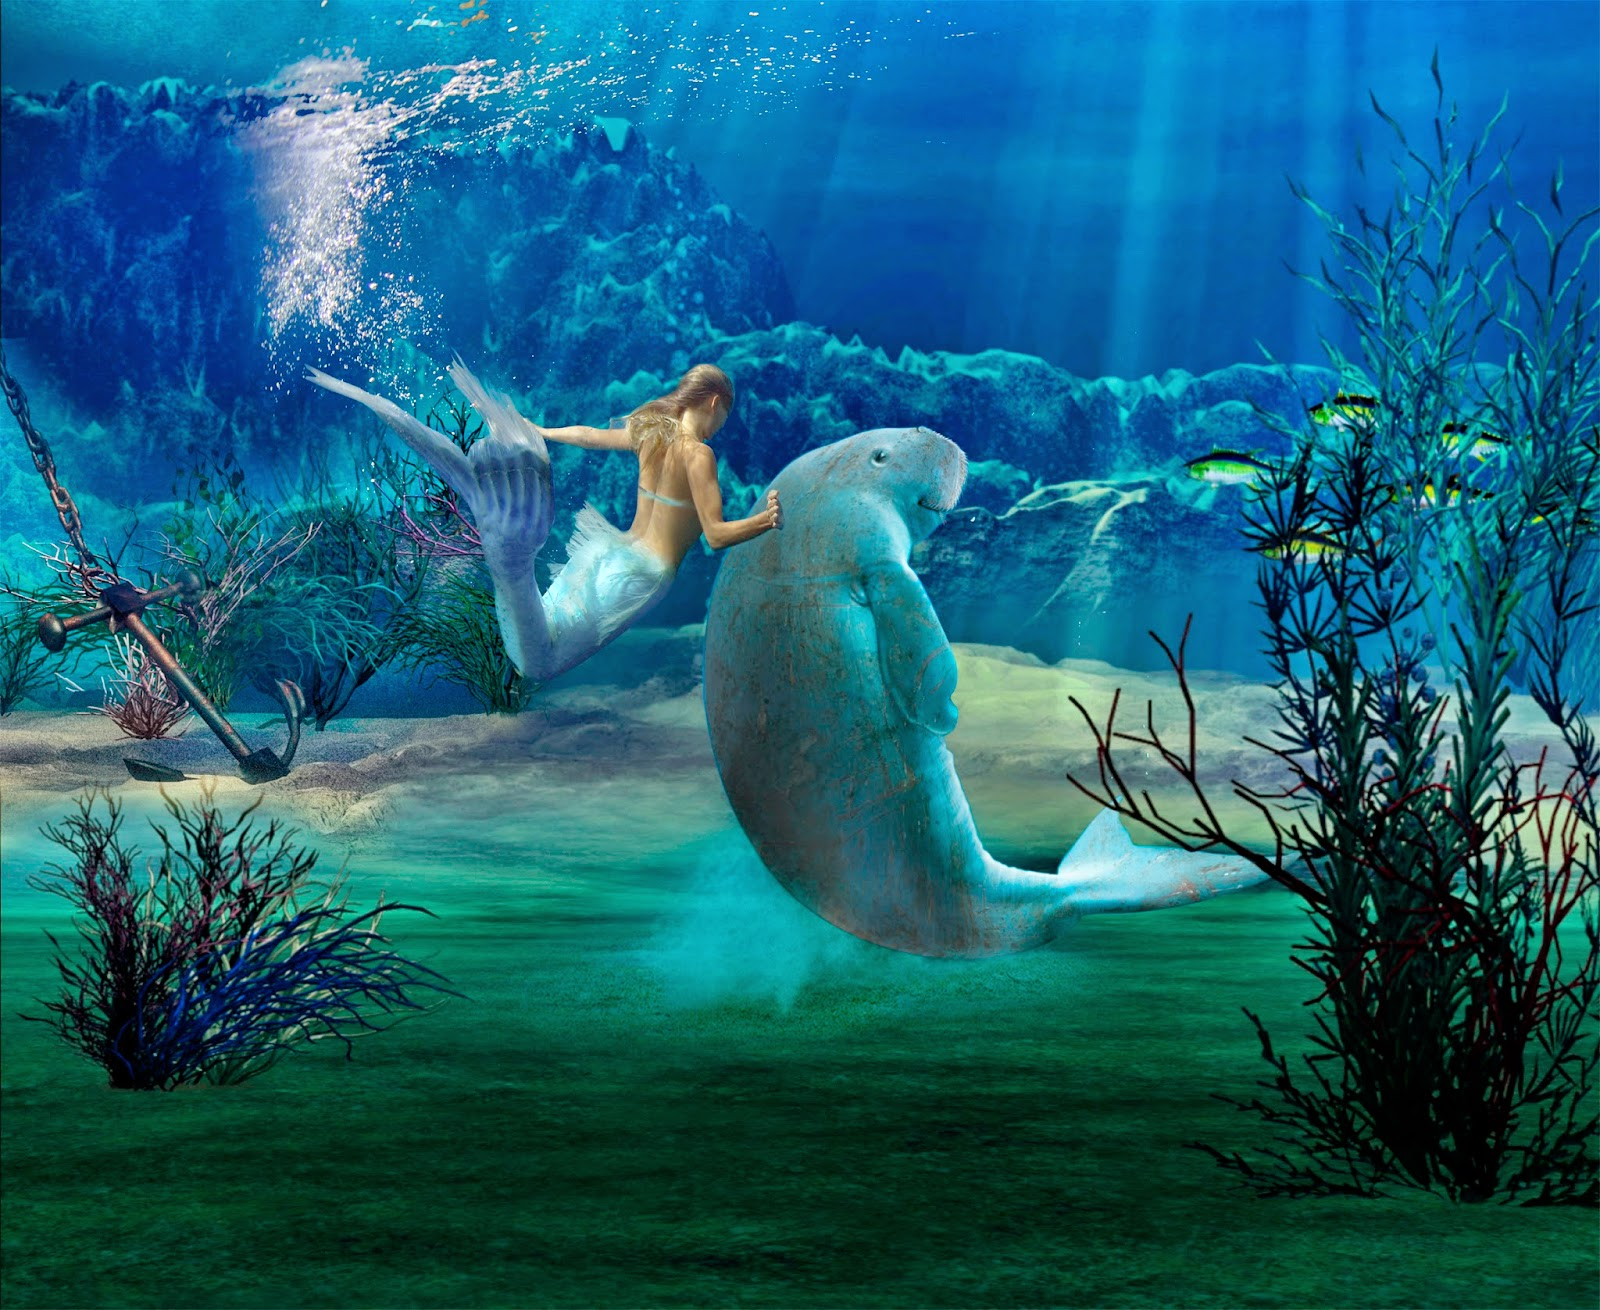 Man  Myth And Magic  Creatures From The Deep  Mermaids